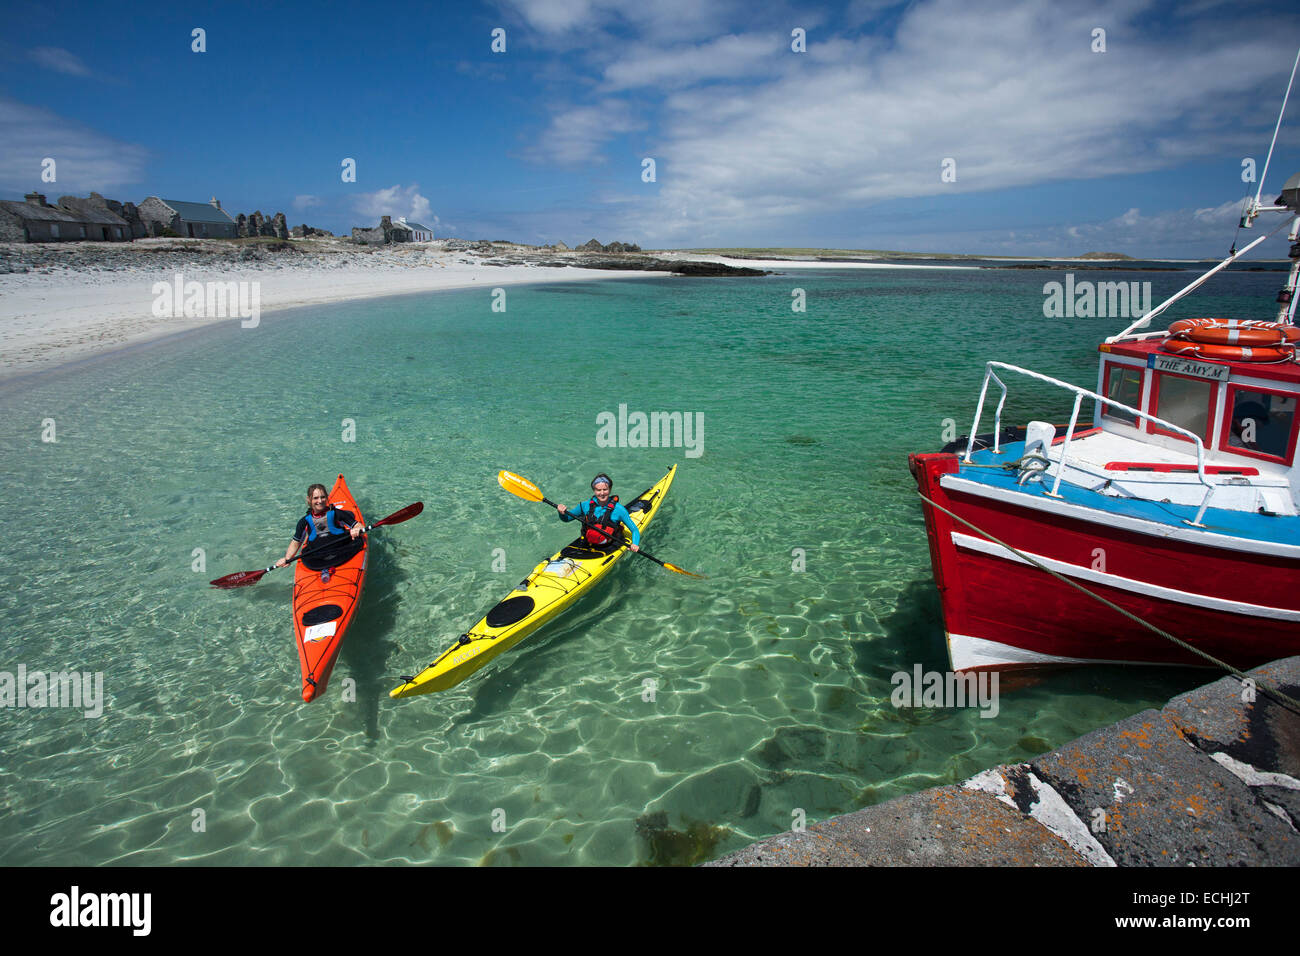 Fishing boat and sea kayakers beside the pier on Inishkea South Island, County Mayo, Ireland. - Stock Image